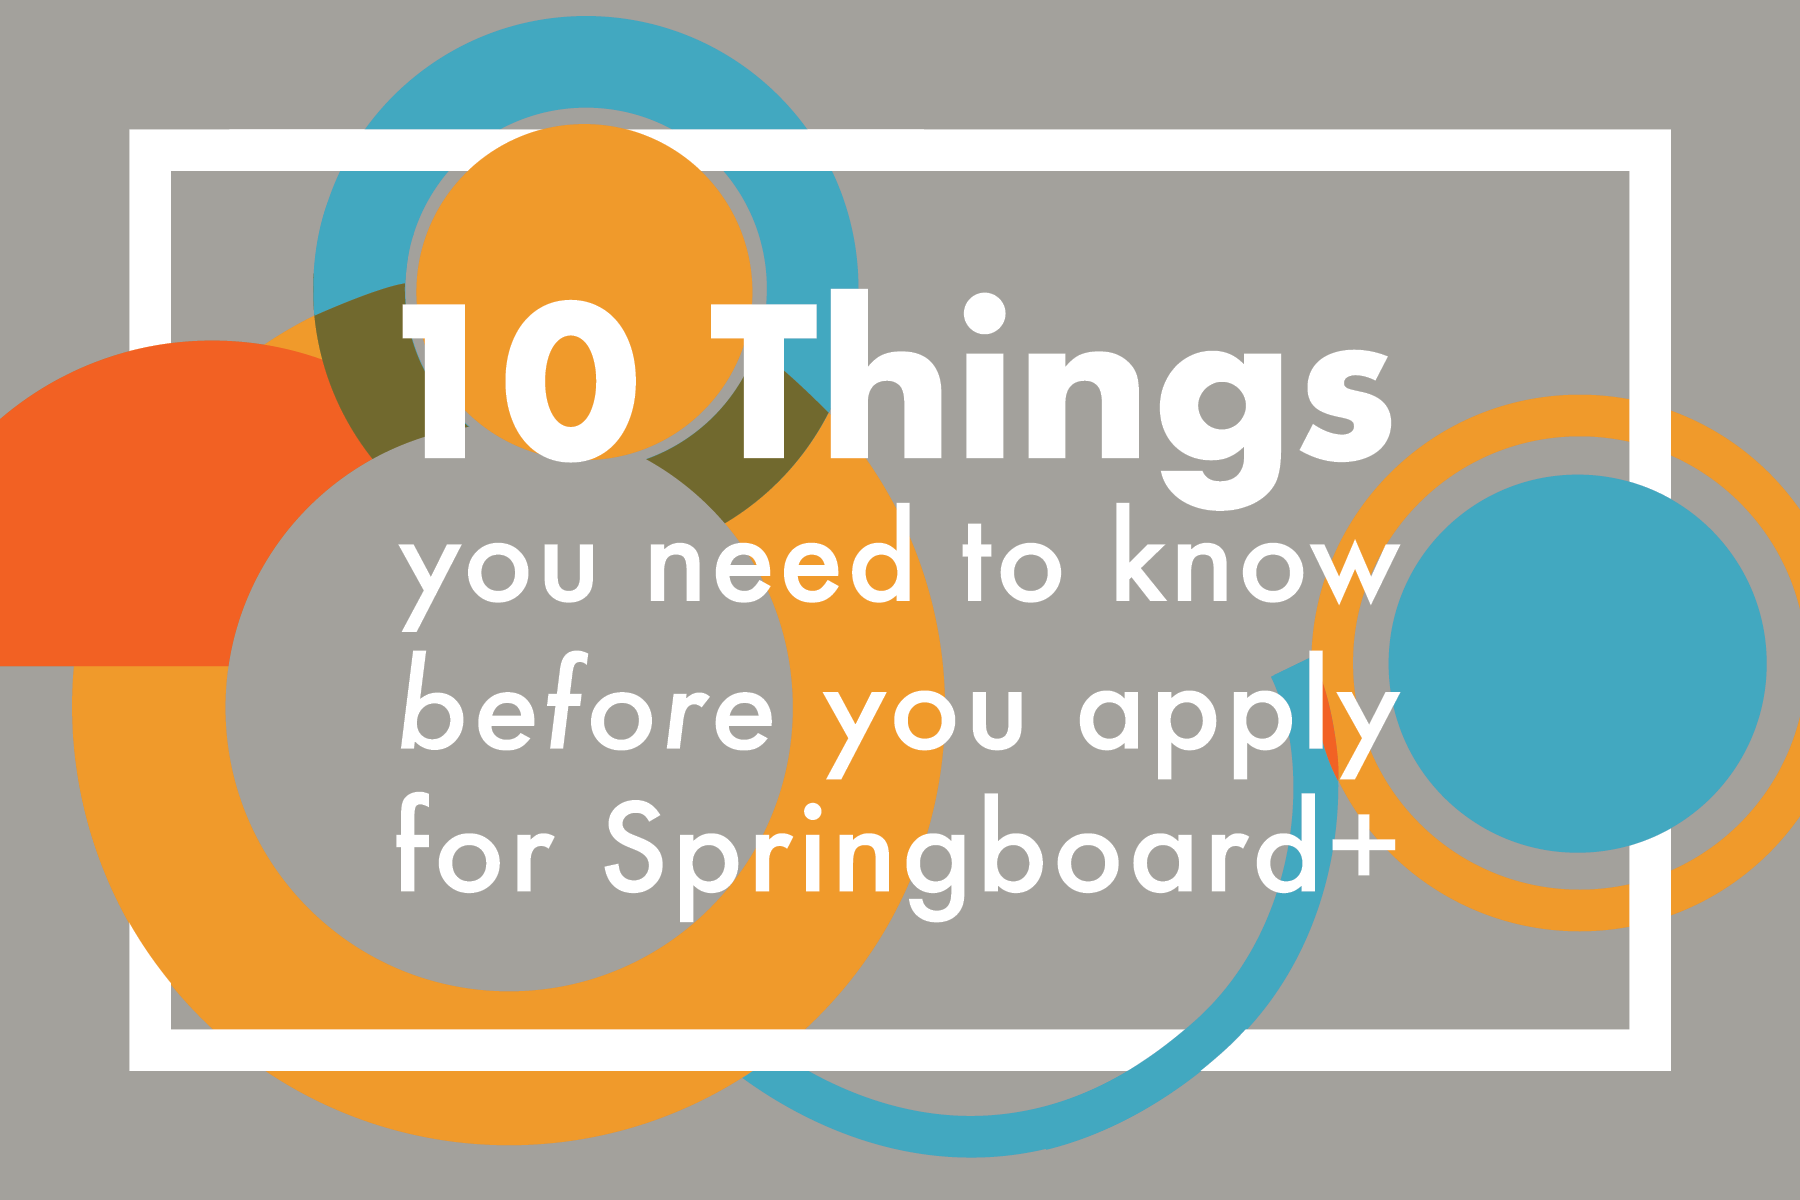 10 things you need to know before you apply for Springboard+